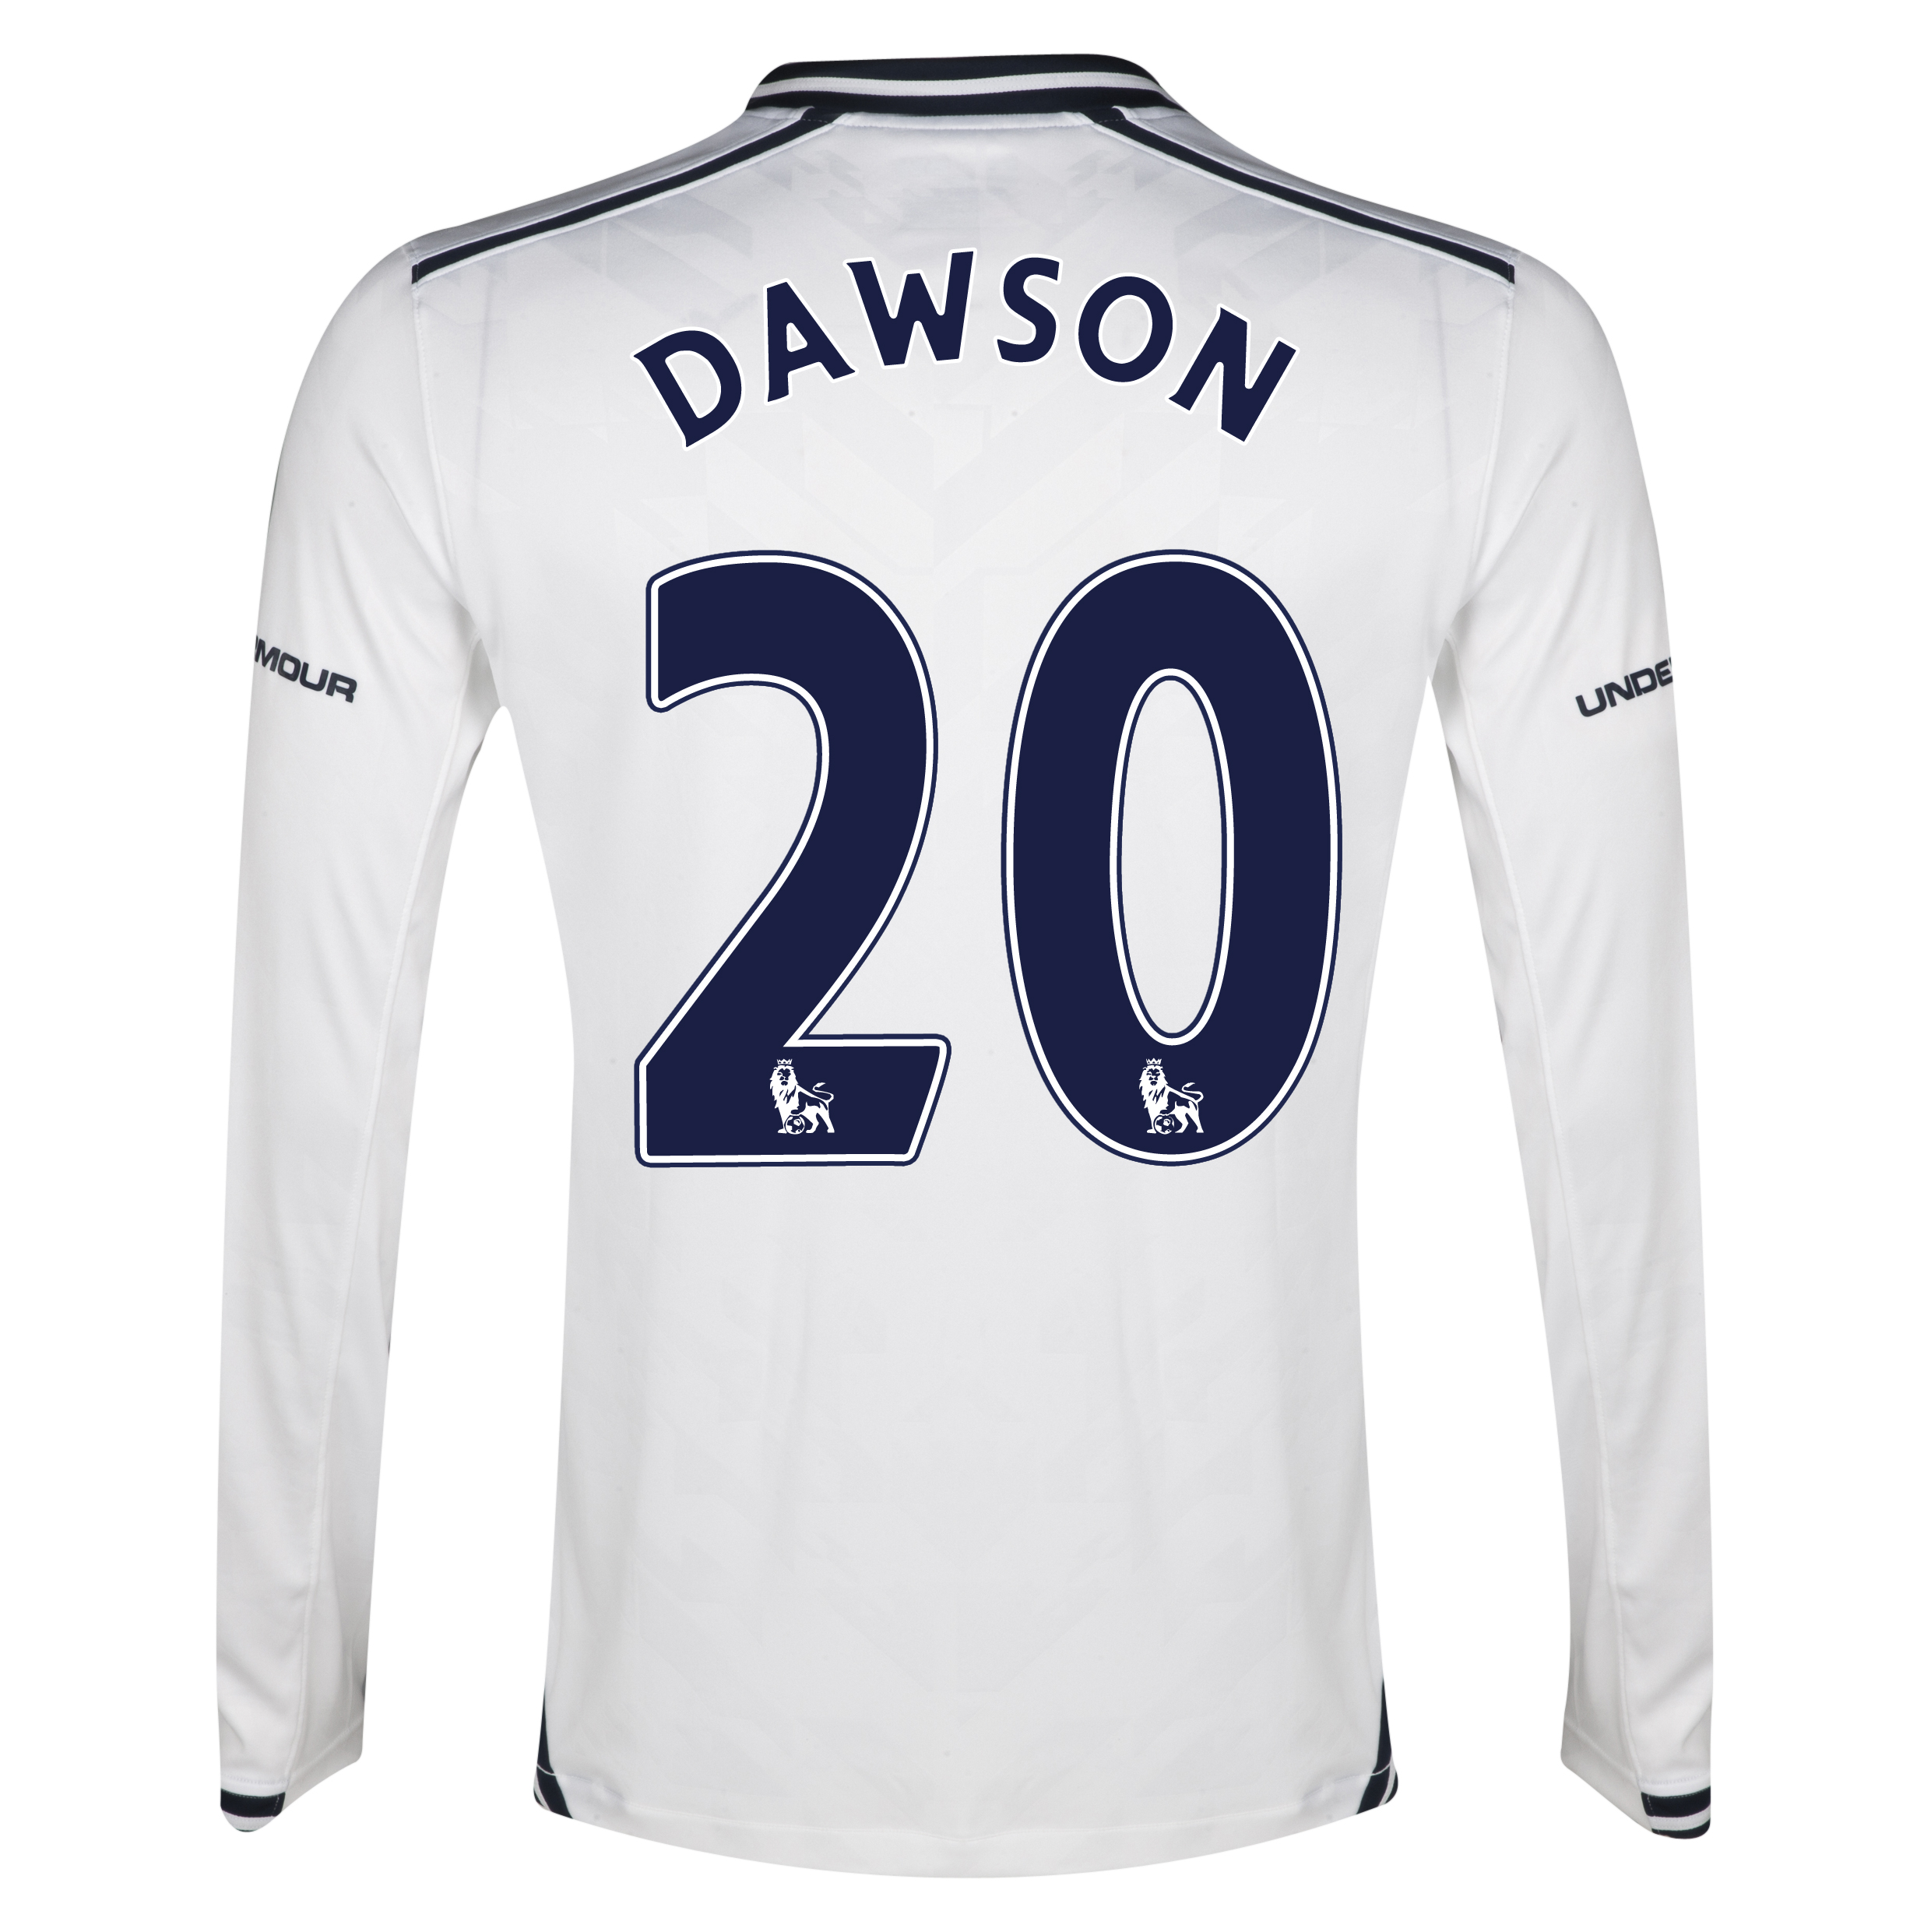 Tottenham Hotspur Home Shirt 2013/14 - Long Sleeve with Dawson 20 printing